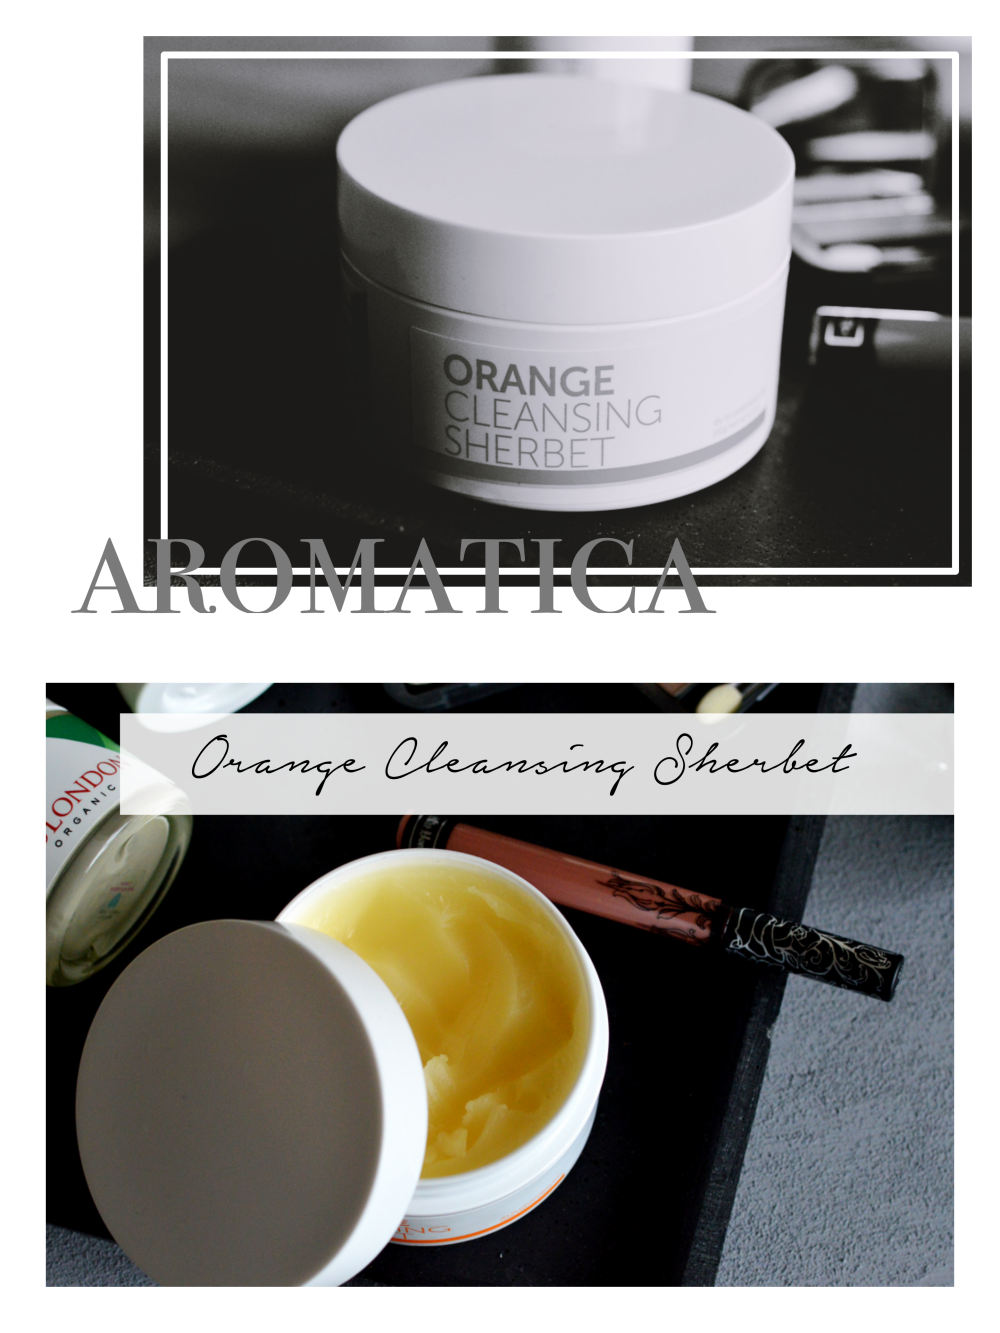 Vegan Beauty Favorites aromatica cleansing sherbet